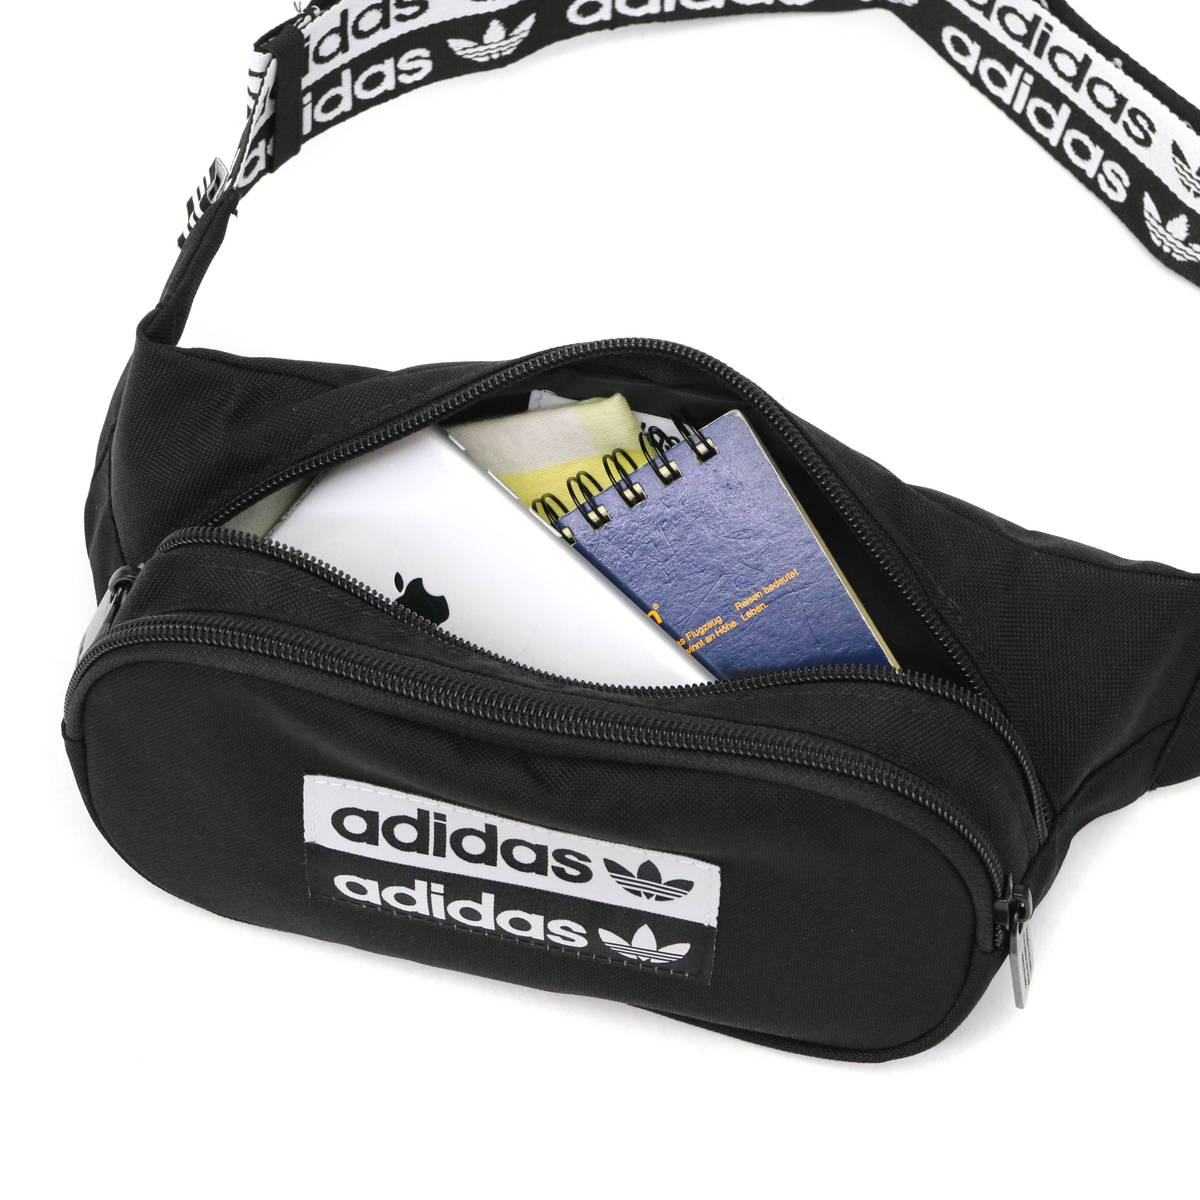 Waist pouch Pouch waist bag adidas Originals Body bag VOCAL WAISTBAG Men's Women's GHQ48